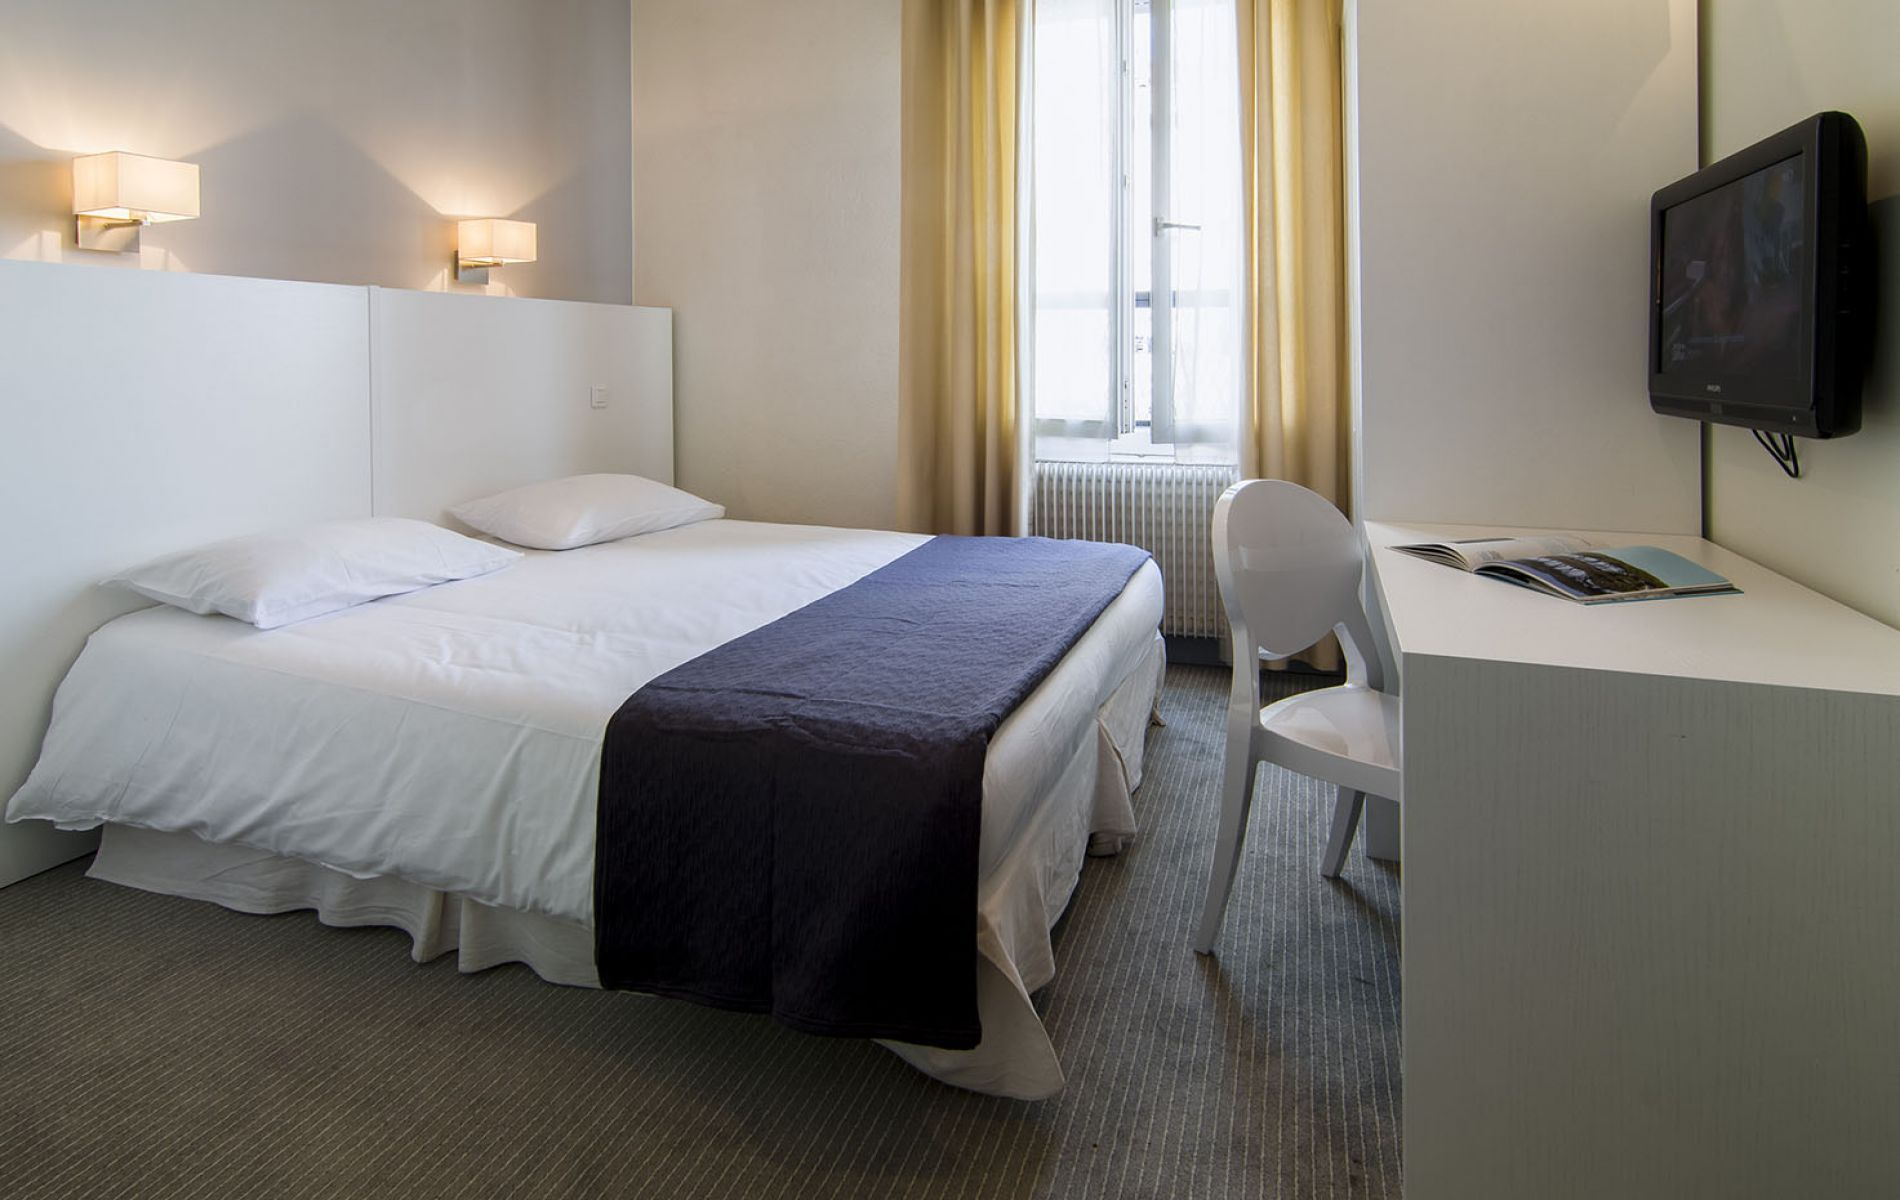 hotel plm 2 stars hotel near the cannes film festival. Black Bedroom Furniture Sets. Home Design Ideas